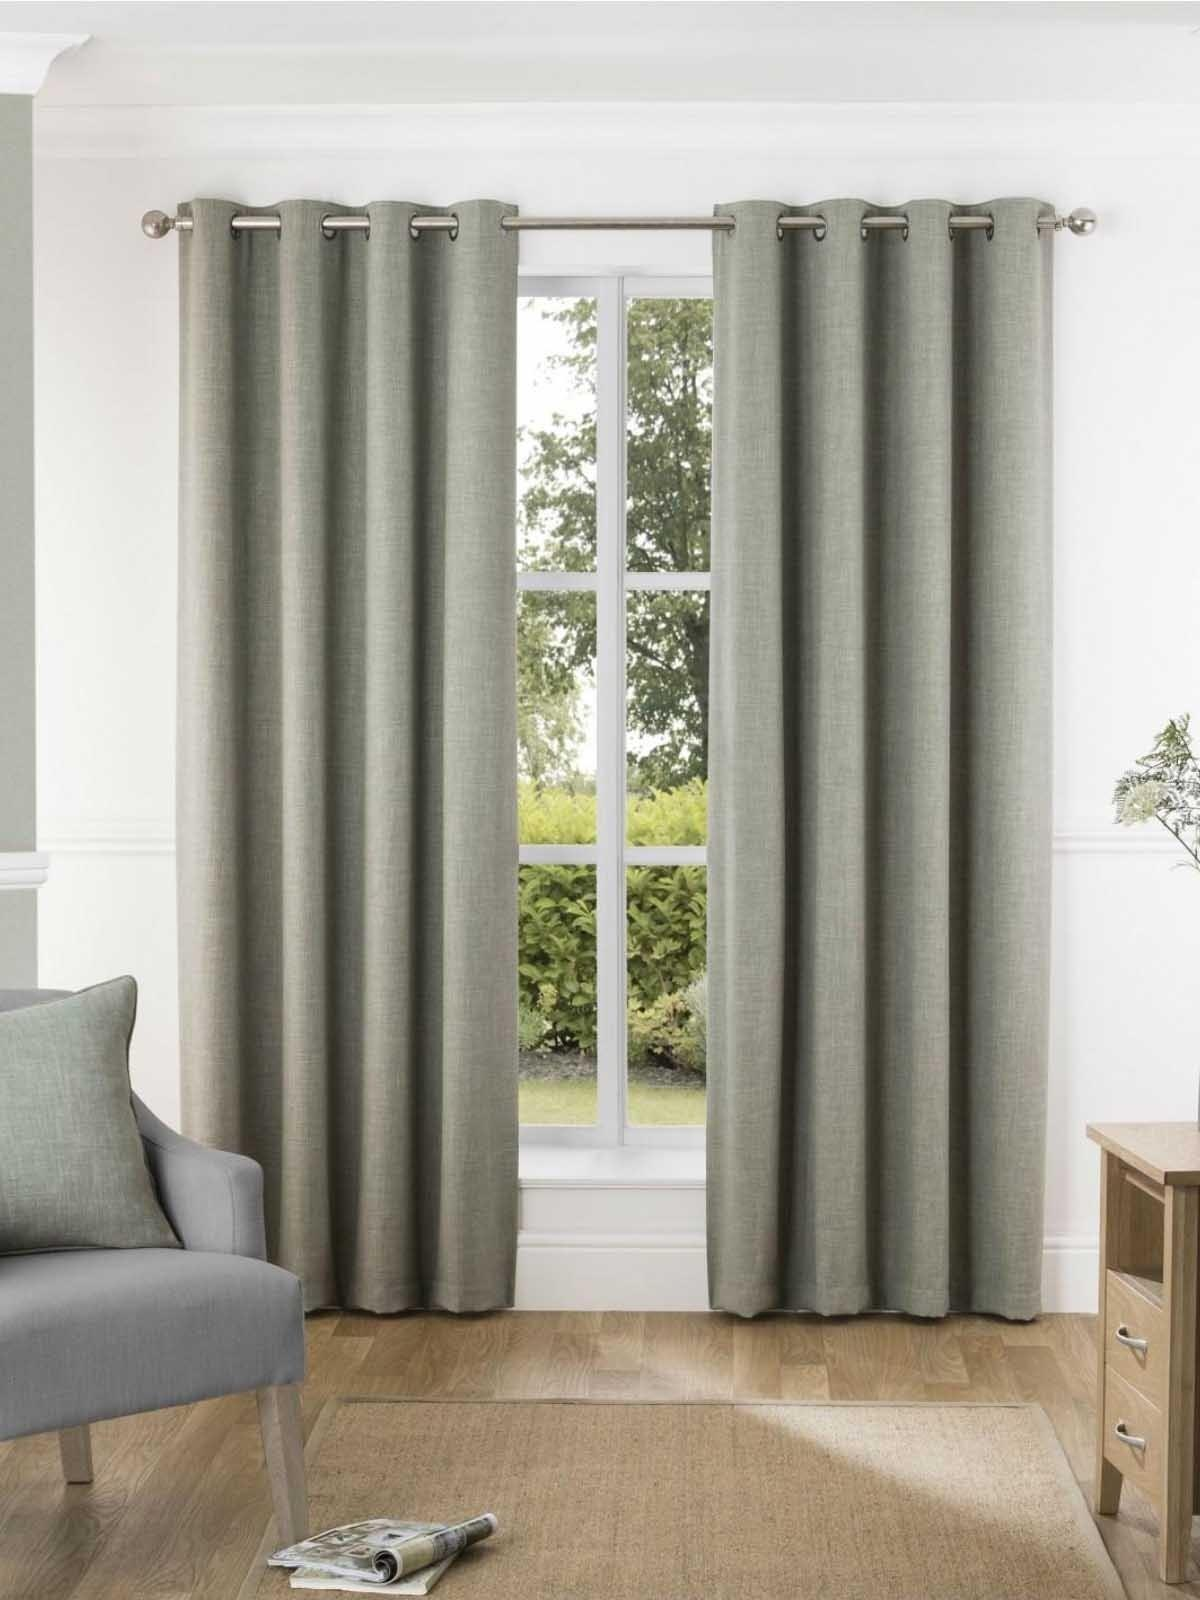 Harlow Blackout Eyelet Curtains Green Ponden Home